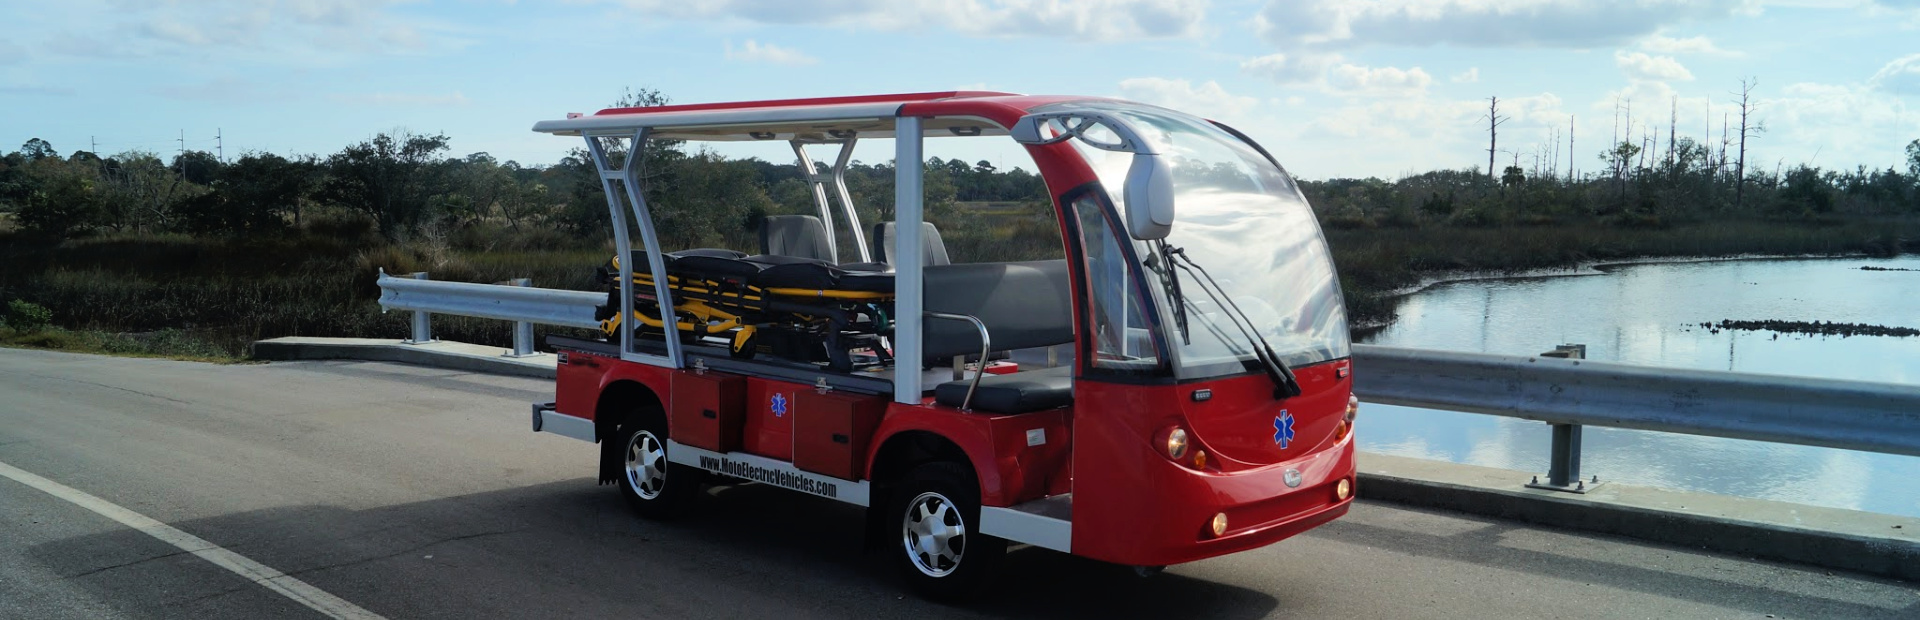 EMS Responder Electric Shuttle